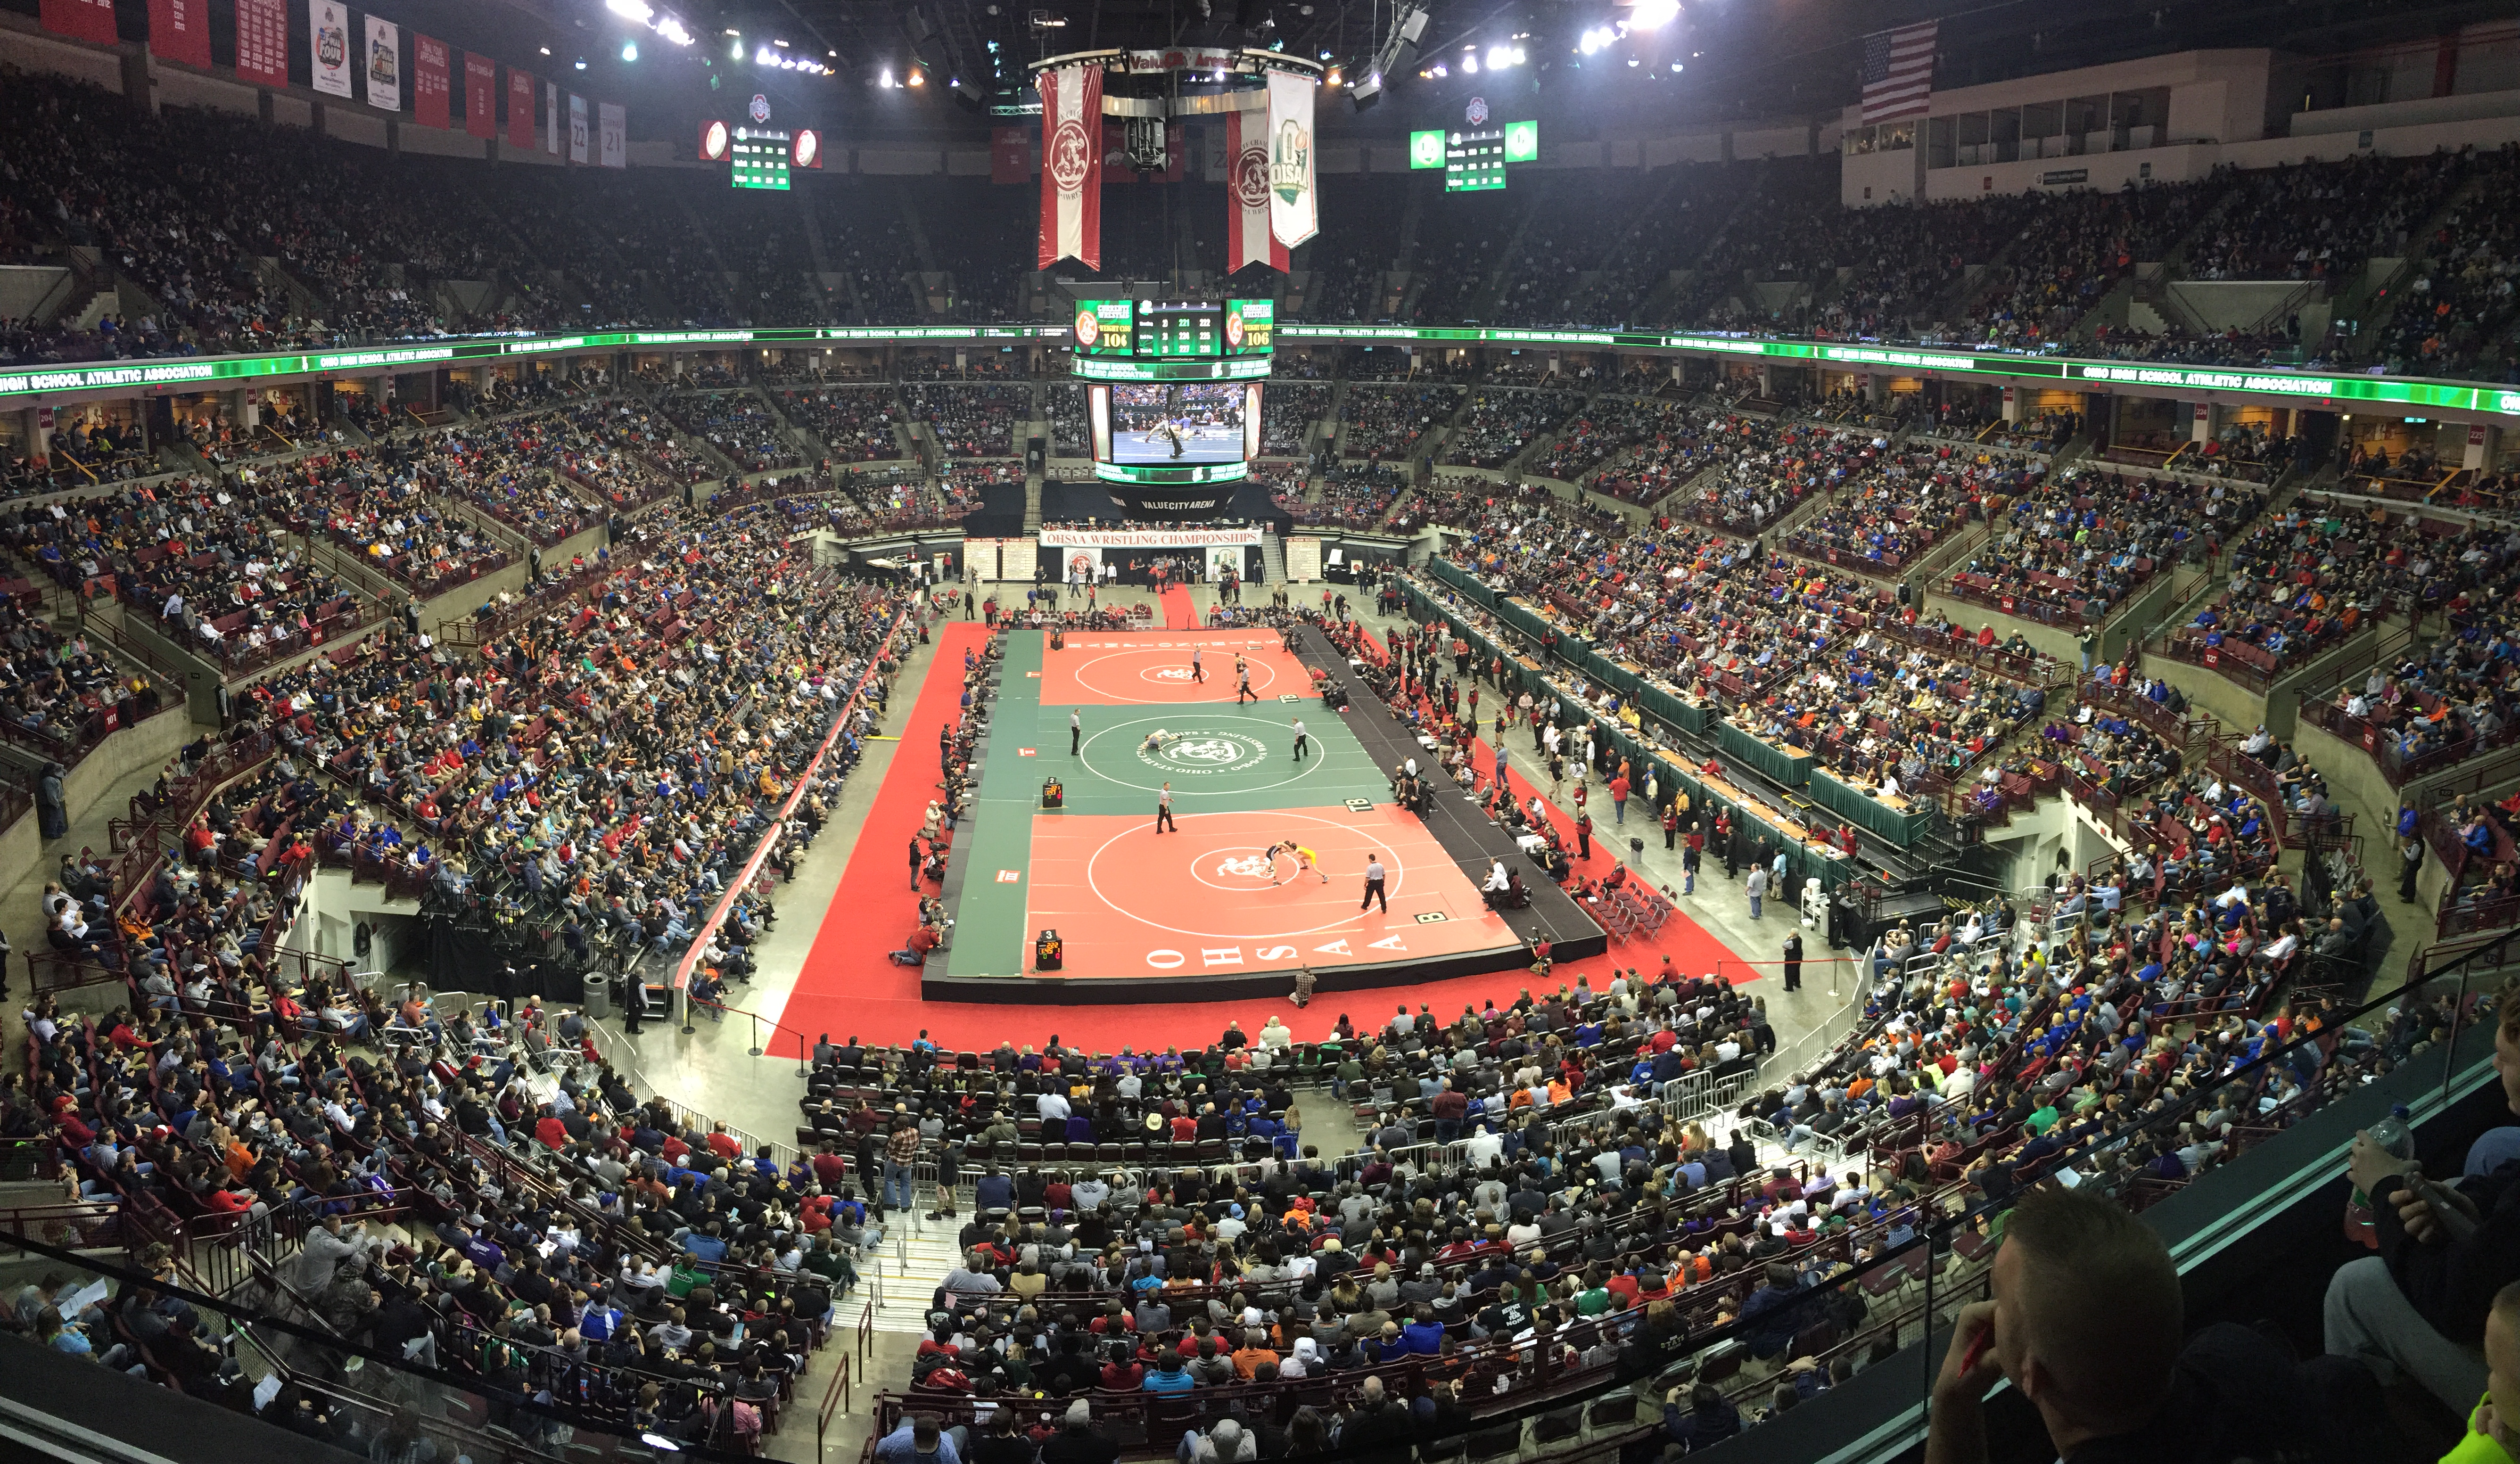 2017 OHSAA Individual Wrestling State Tournament Coverage